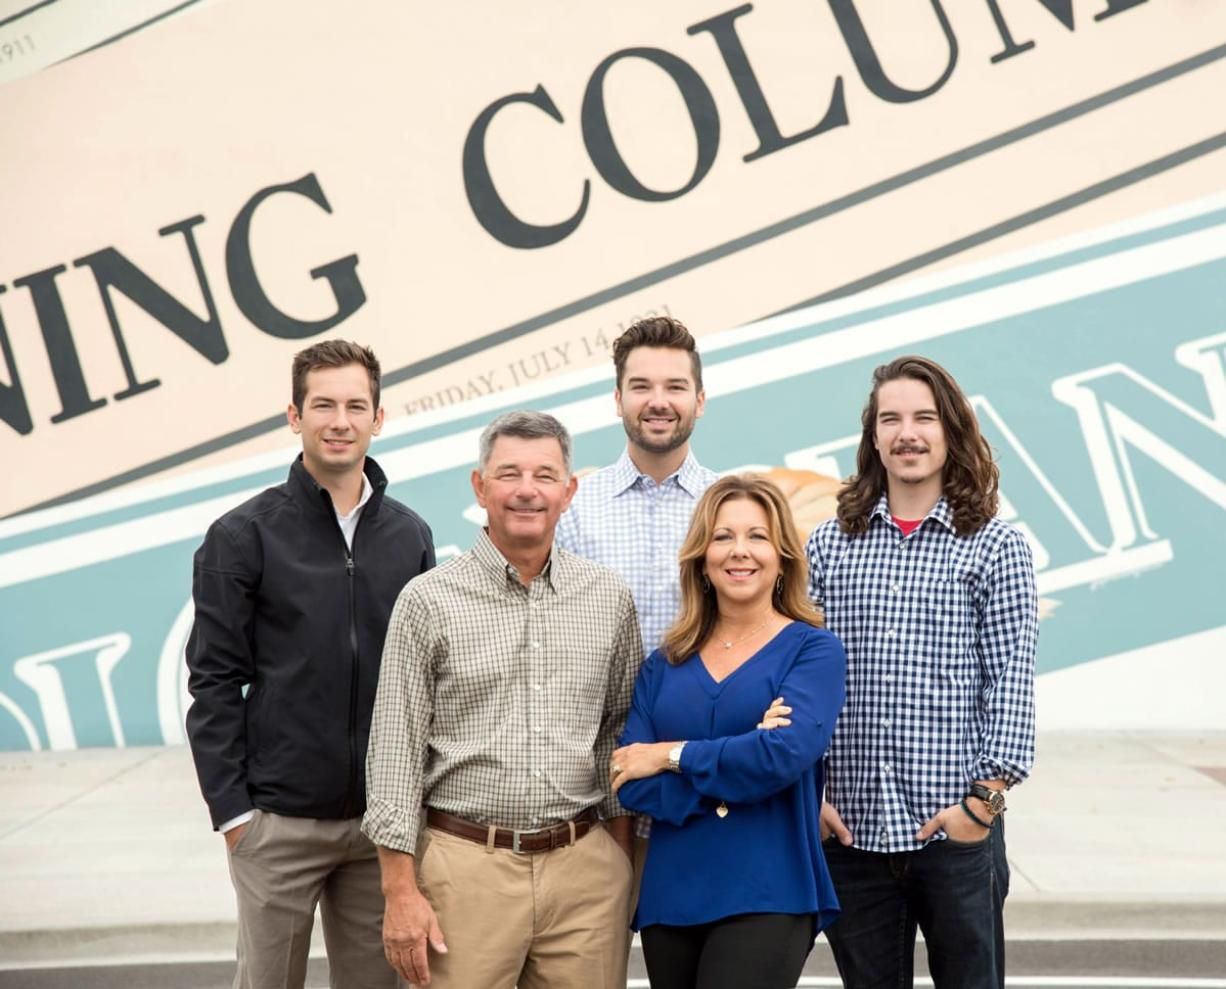 The Columbian, now 125 years old, has been owned by the Campbell family since Herbert Campbell purchased the newspaper in 1921. Scott Campell, Herbert's grandson, has been The Columbian's publisher since 1987. He is pictured here with wife Jody, and sons Ben, Will and Ross Campbell.